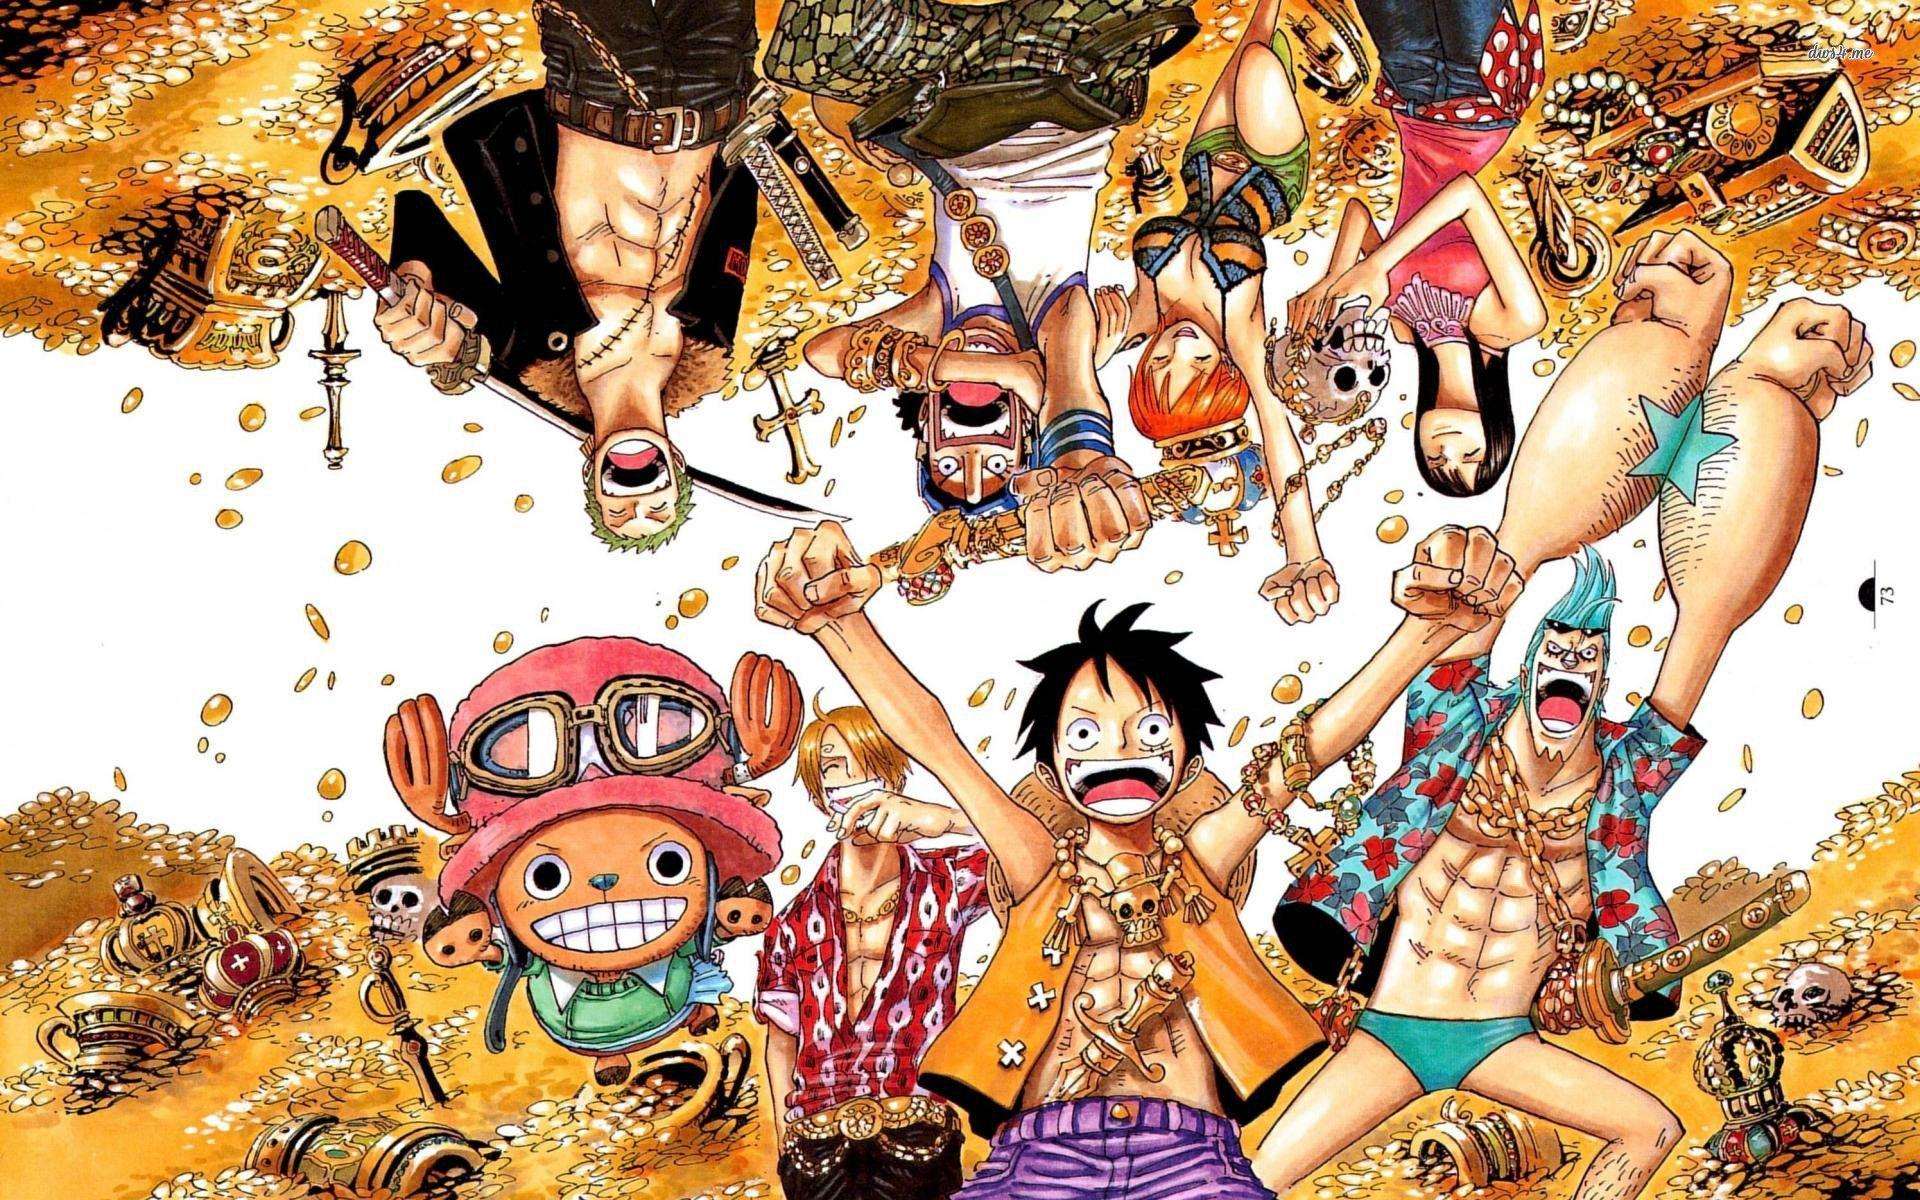 One Piece Wallpapers - Full HD wallpaper search - page 10